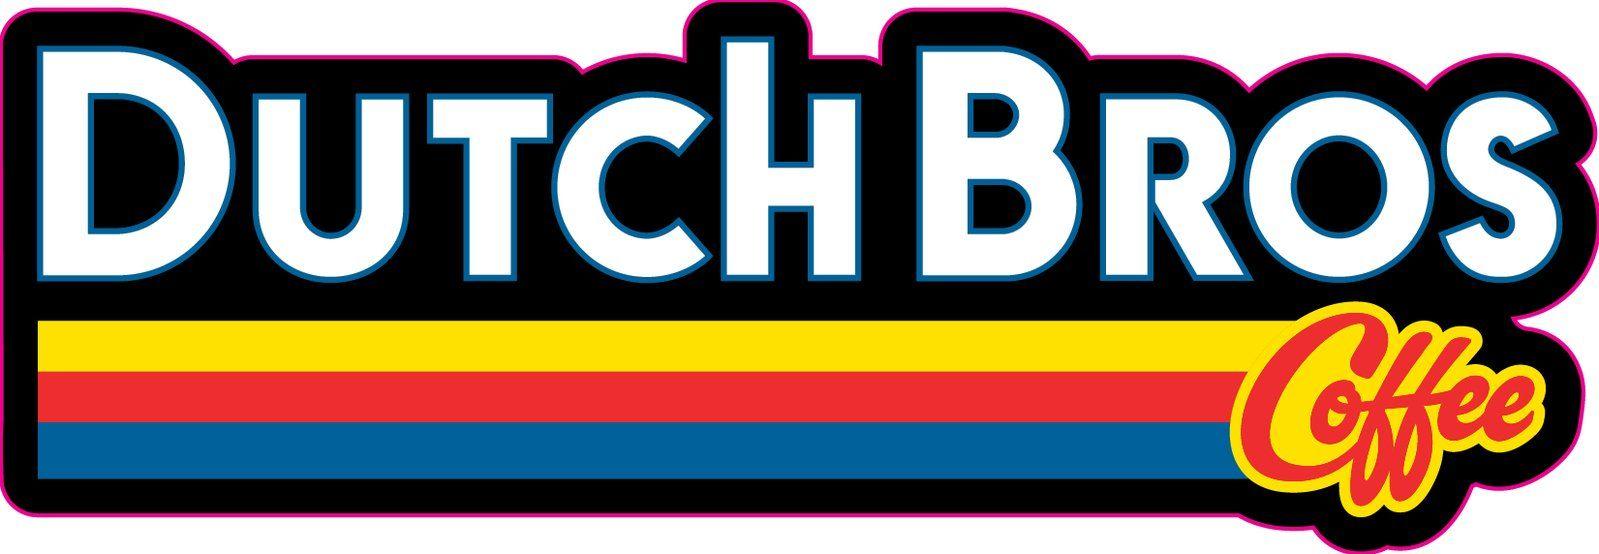 Dutch Bros Logo Sticker #dutchbros